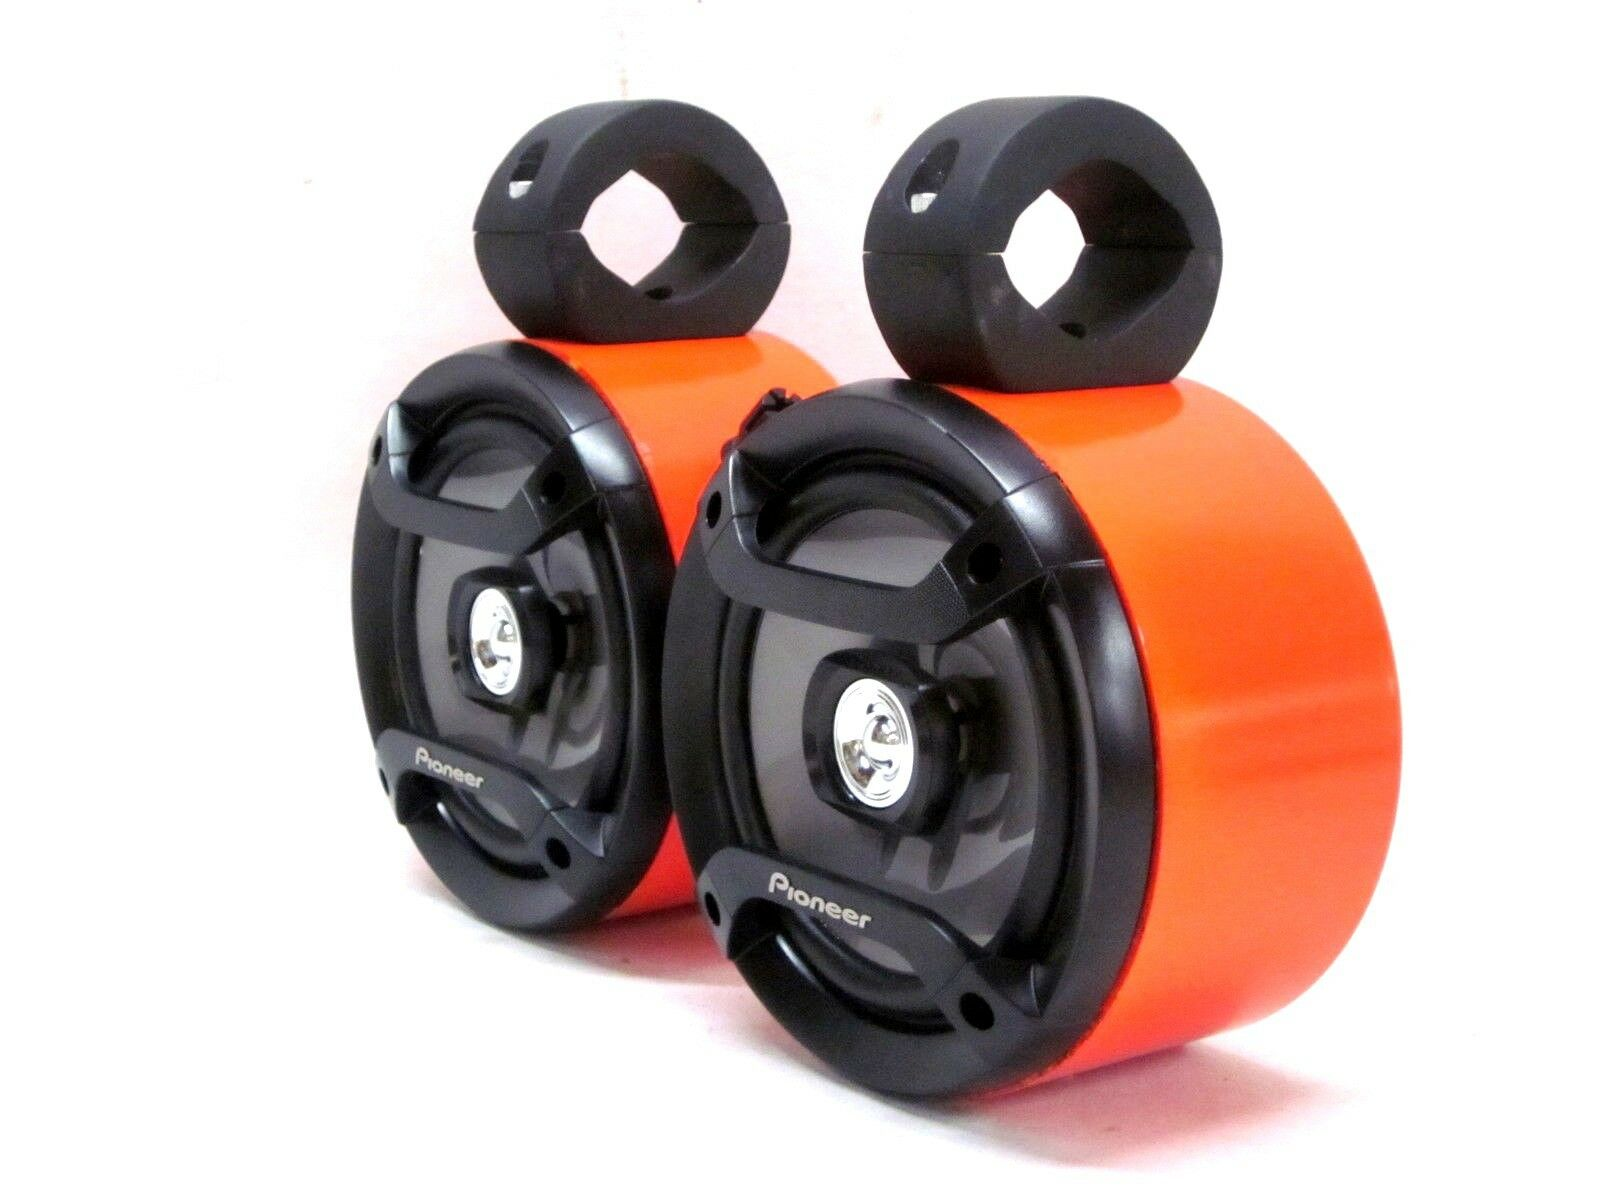 Pioneer orange Mini Wakeboard Tower Boat Roll Cage Speakers UTV RZR Kubota Jeep